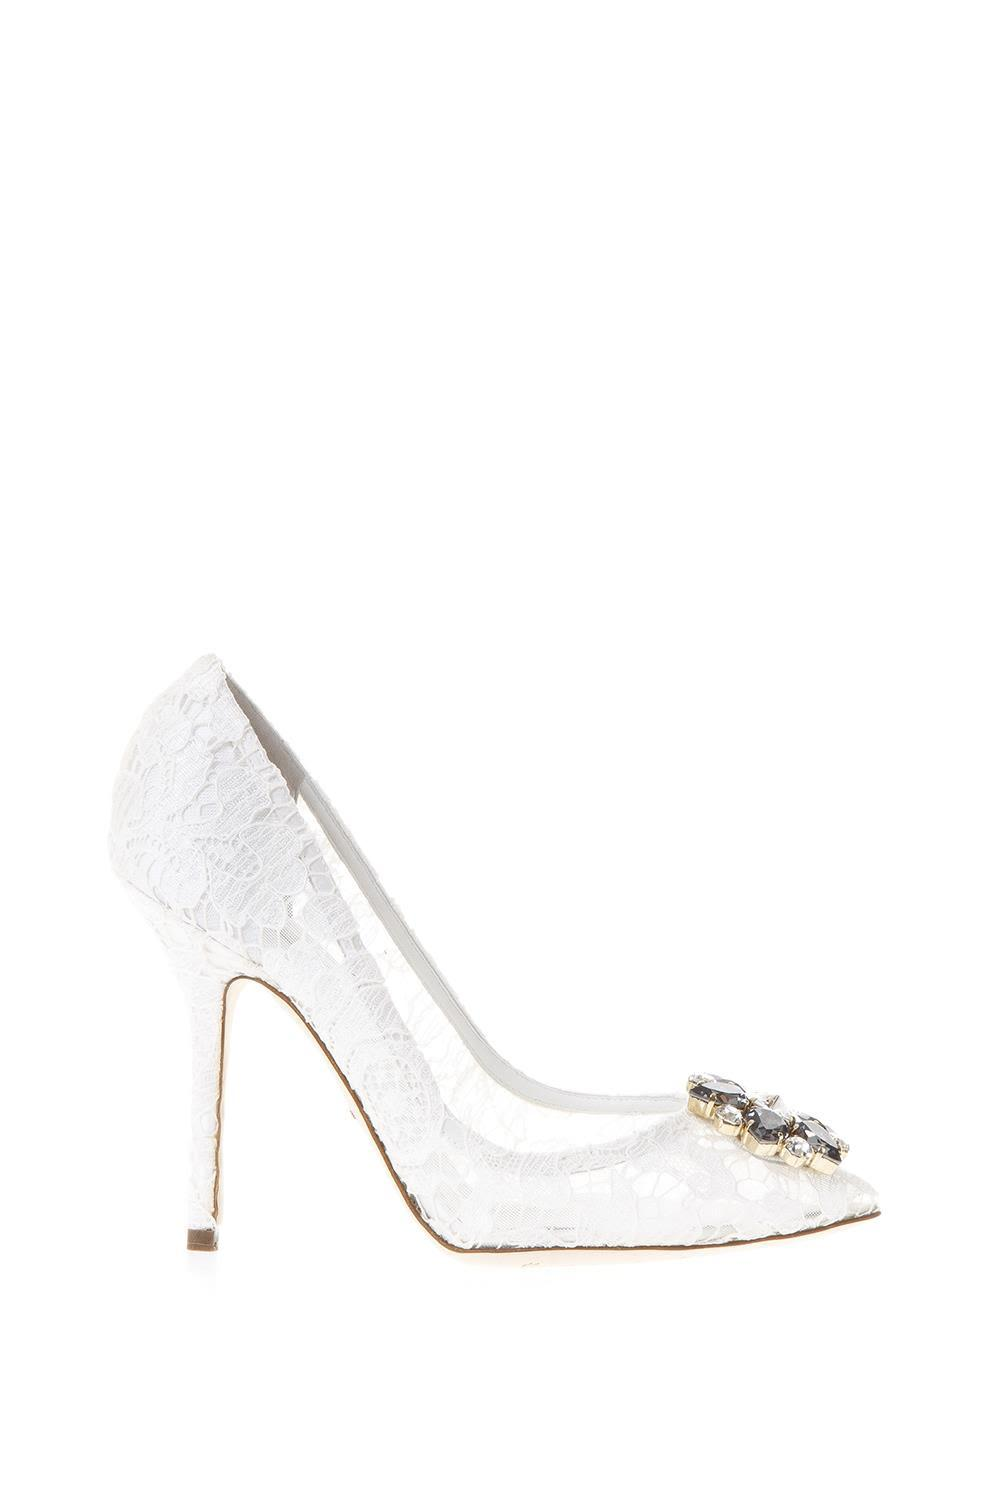 Dolce & Gabbana Taormina Lace Open Toe Court Shoes With Embroidery In White